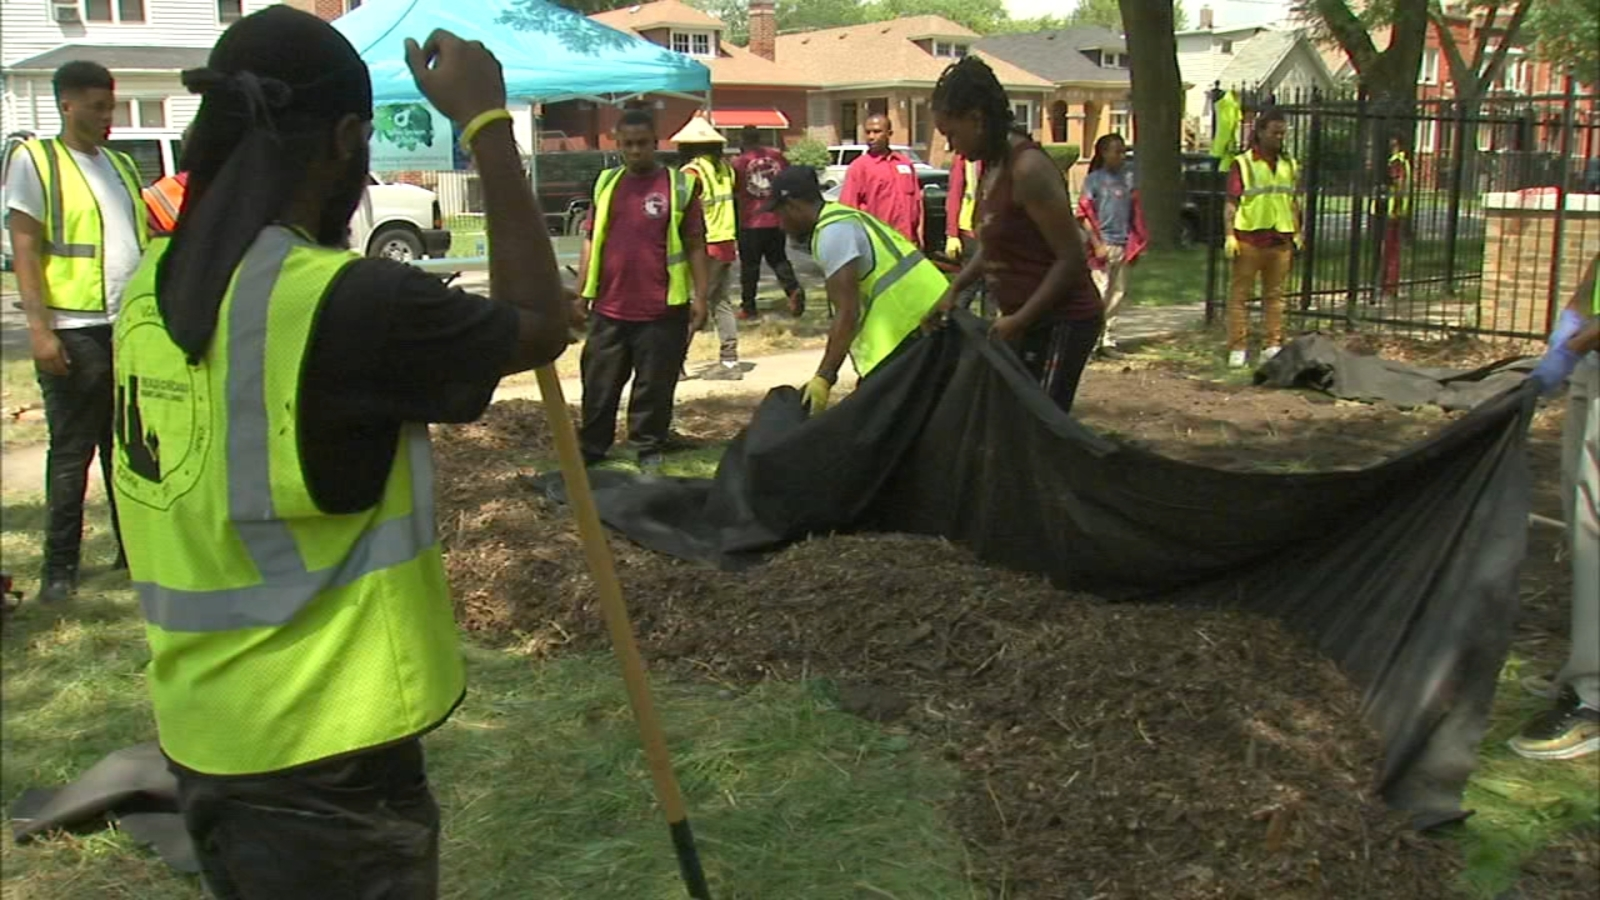 Grounds for Peace transforms vacant lots into green spaces in crime ridden neighborhoods